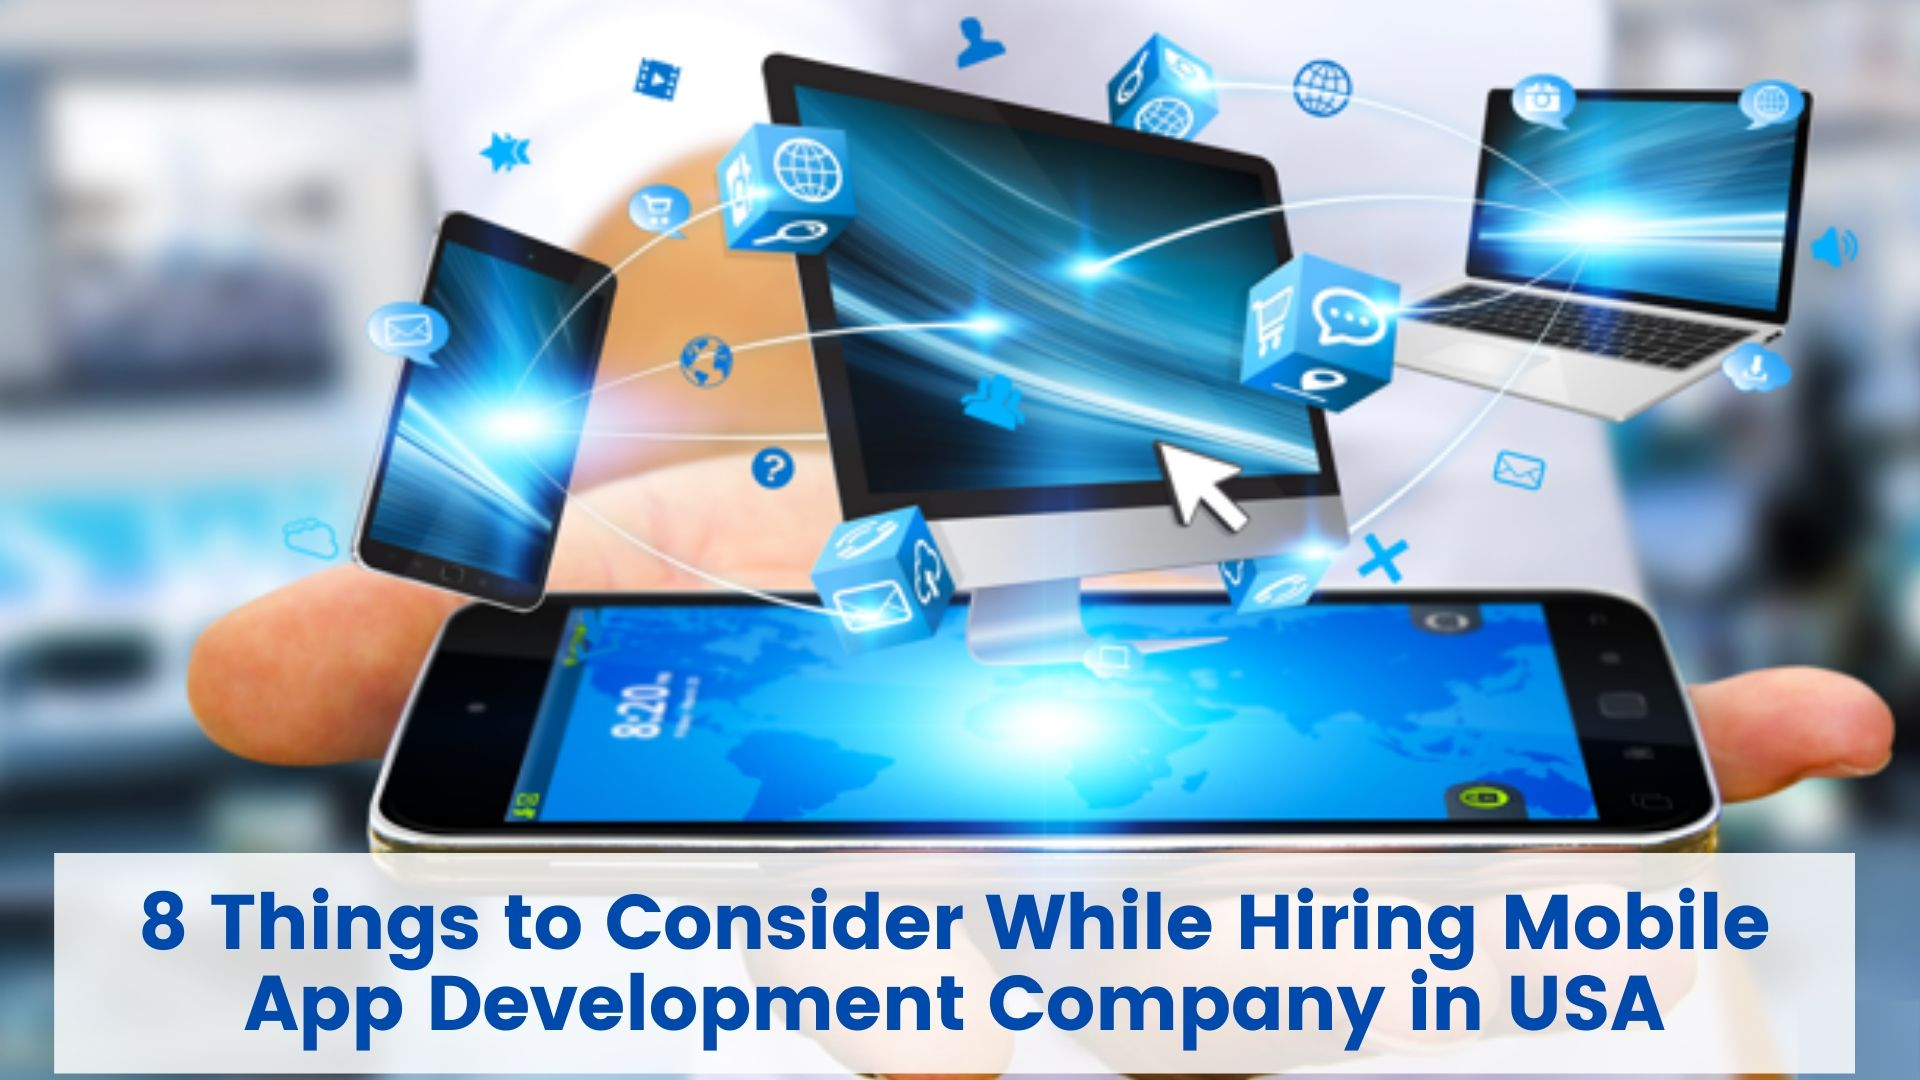 8 Things to Consider While Hiring Mobile App Development Company in USA